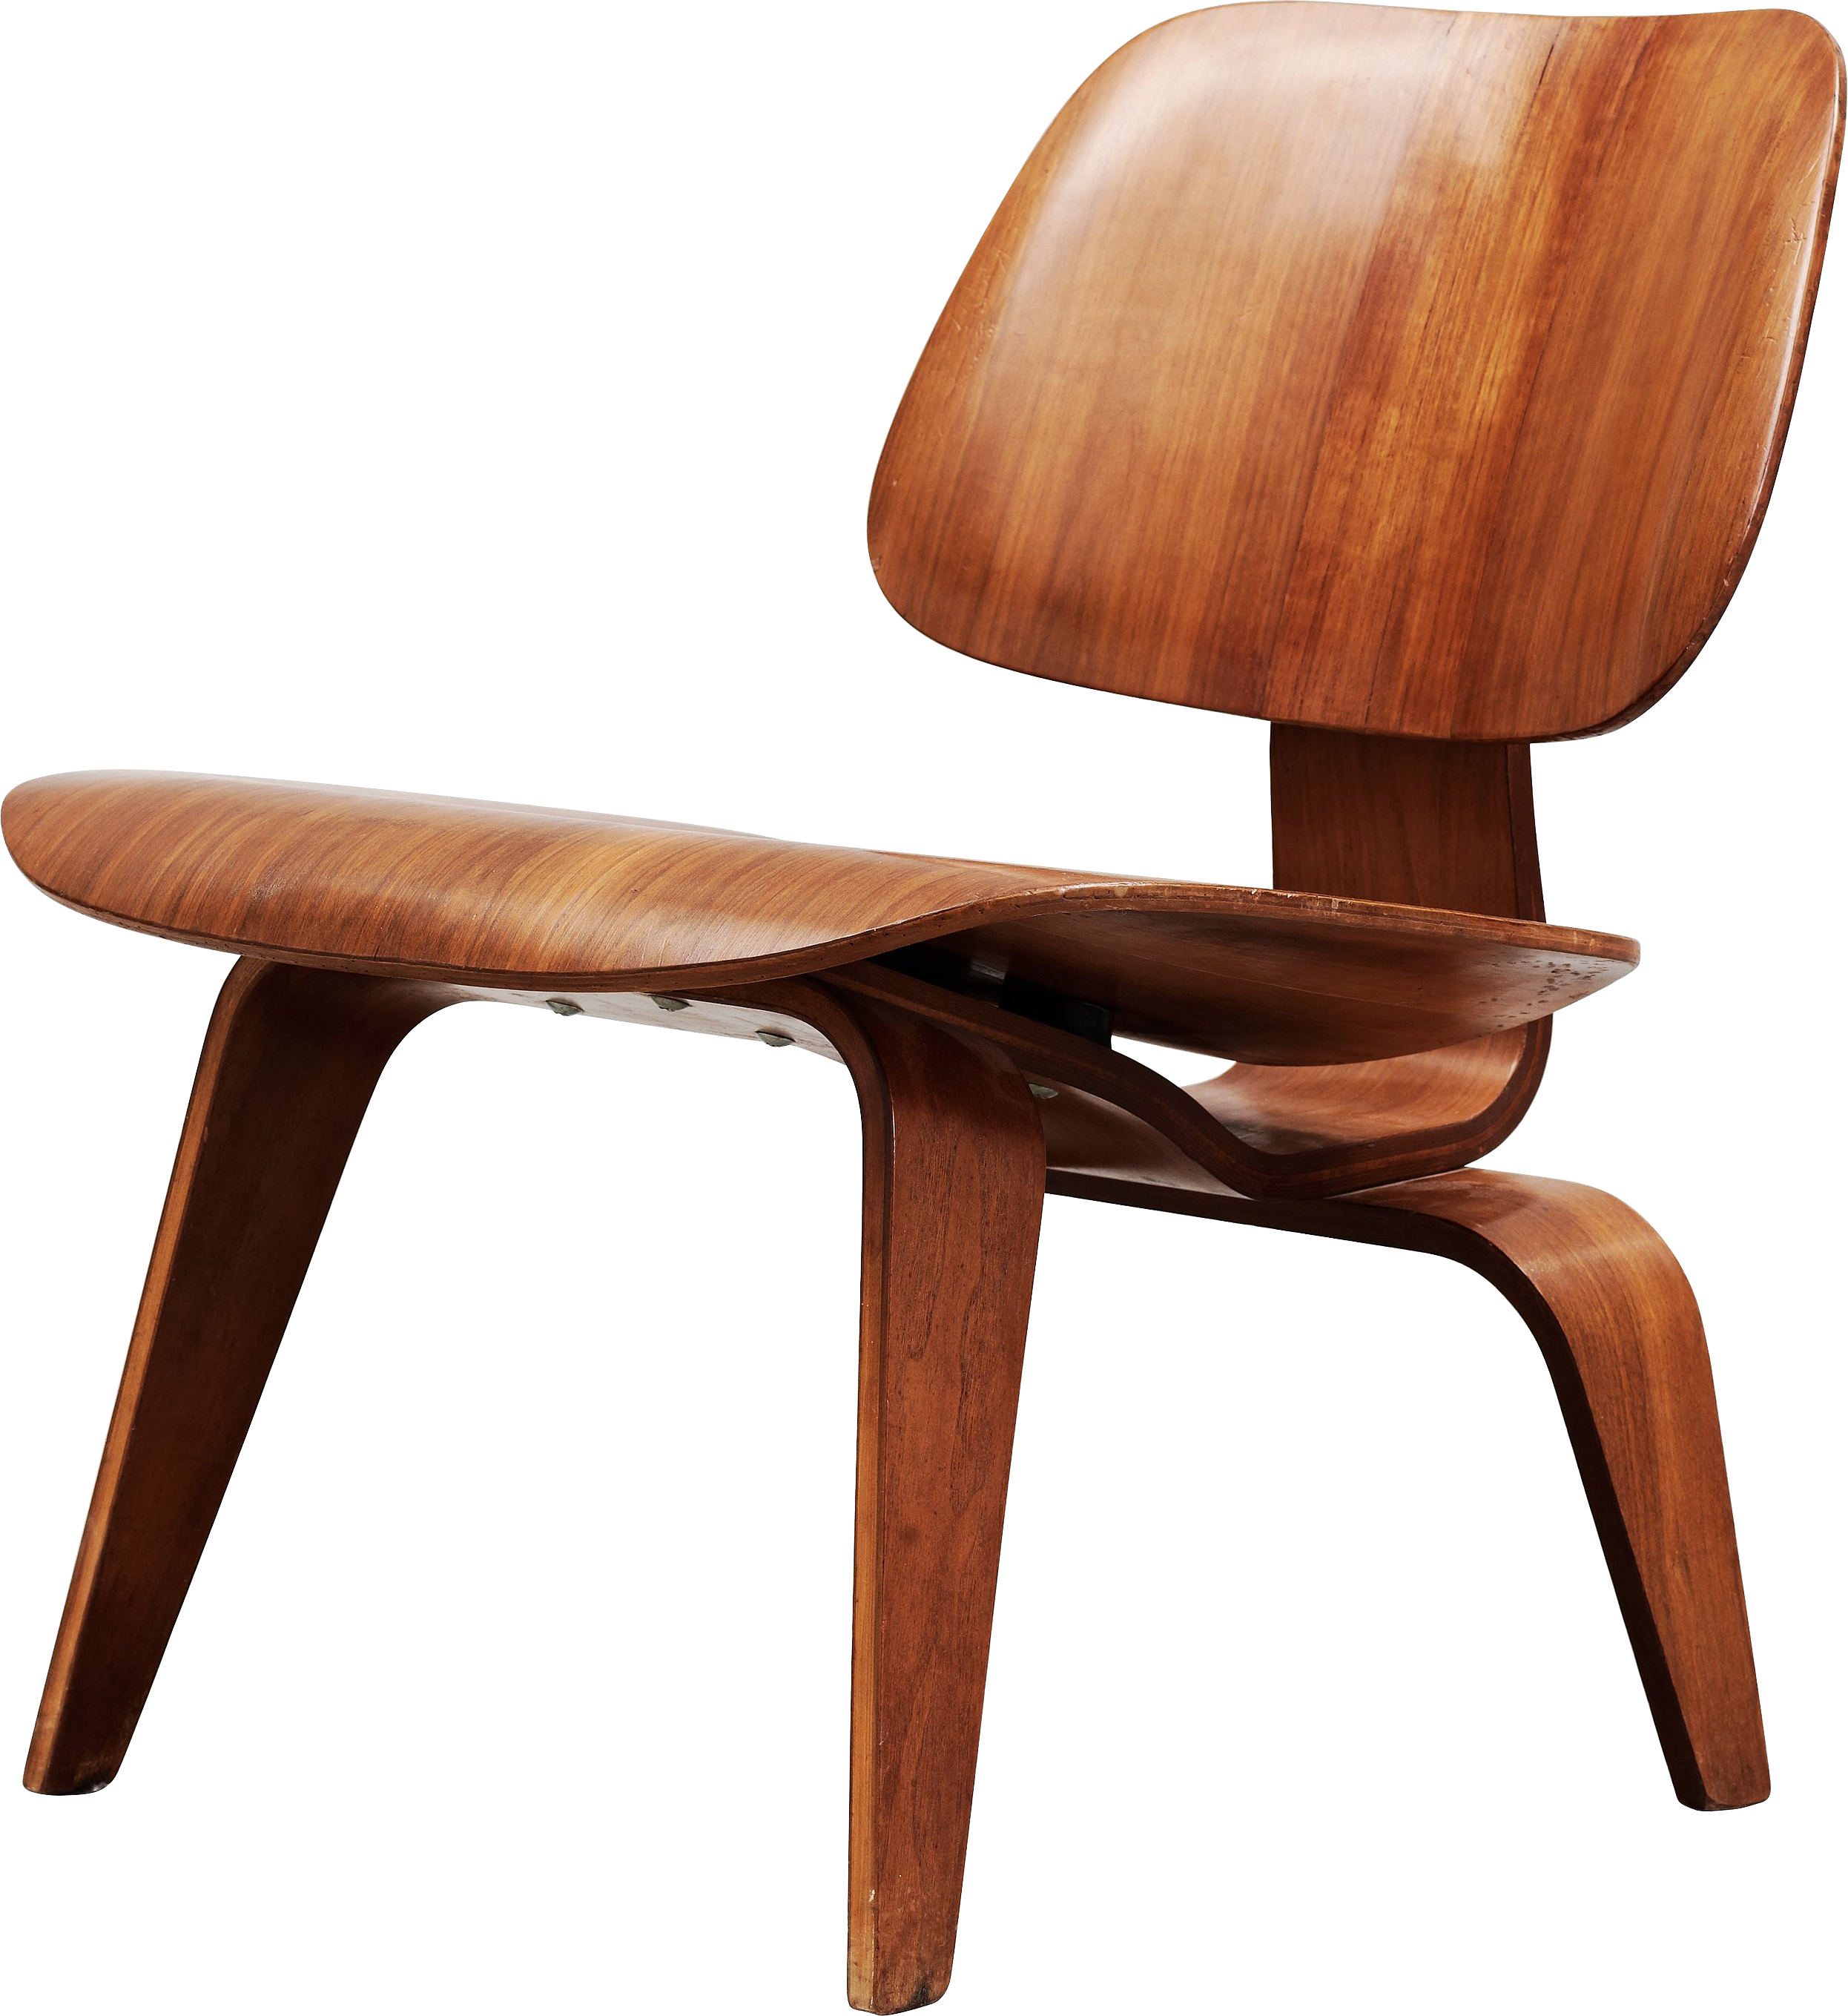 Chair Png Image - Chair, Transparent background PNG HD thumbnail